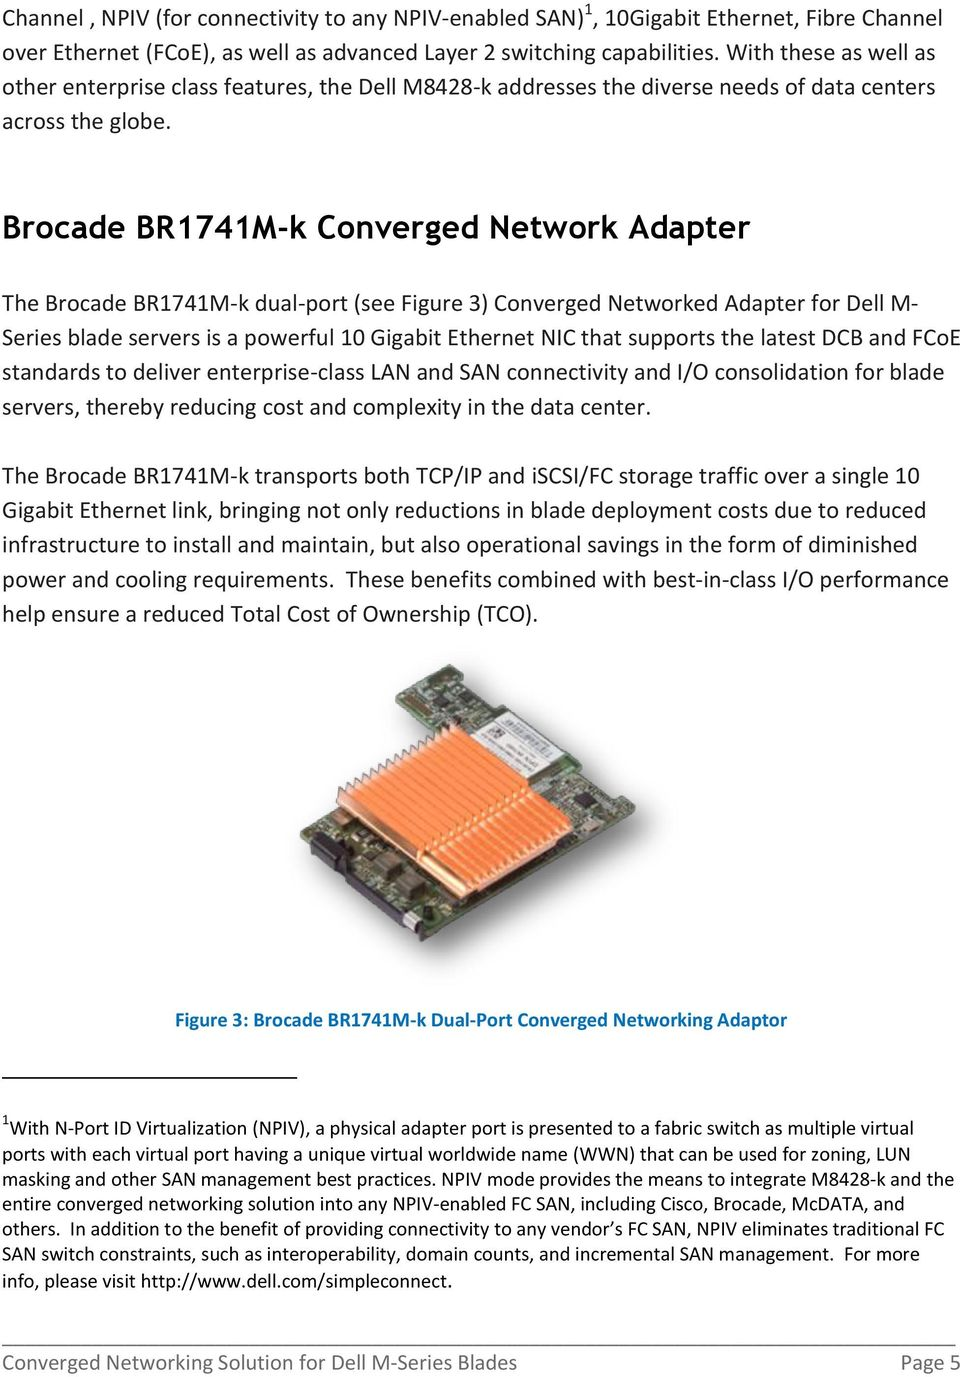 Brocade BR1741M-k Converged Network Adapter The Brocade BR1741M-k dual-port (see Figure 3) Converged Networked Adapter for Dell M- Series blade servers is a powerful 10 Gigabit Ethernet NIC that